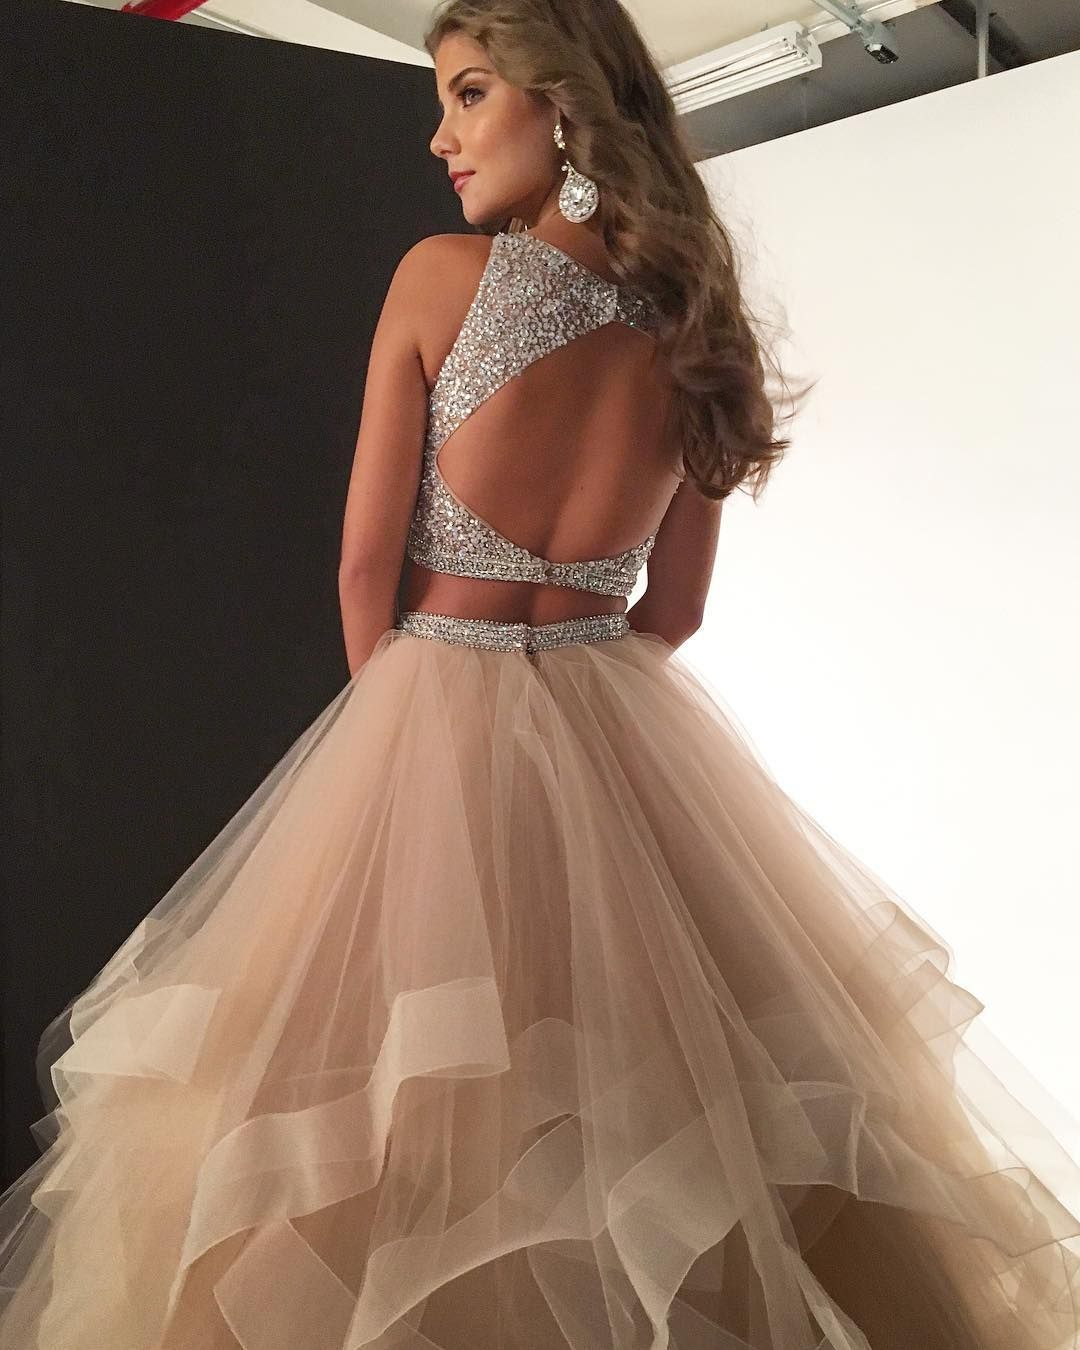 2018 two piece long prom dress, champagne long prom dress with open back, formal evening dress graduation dress